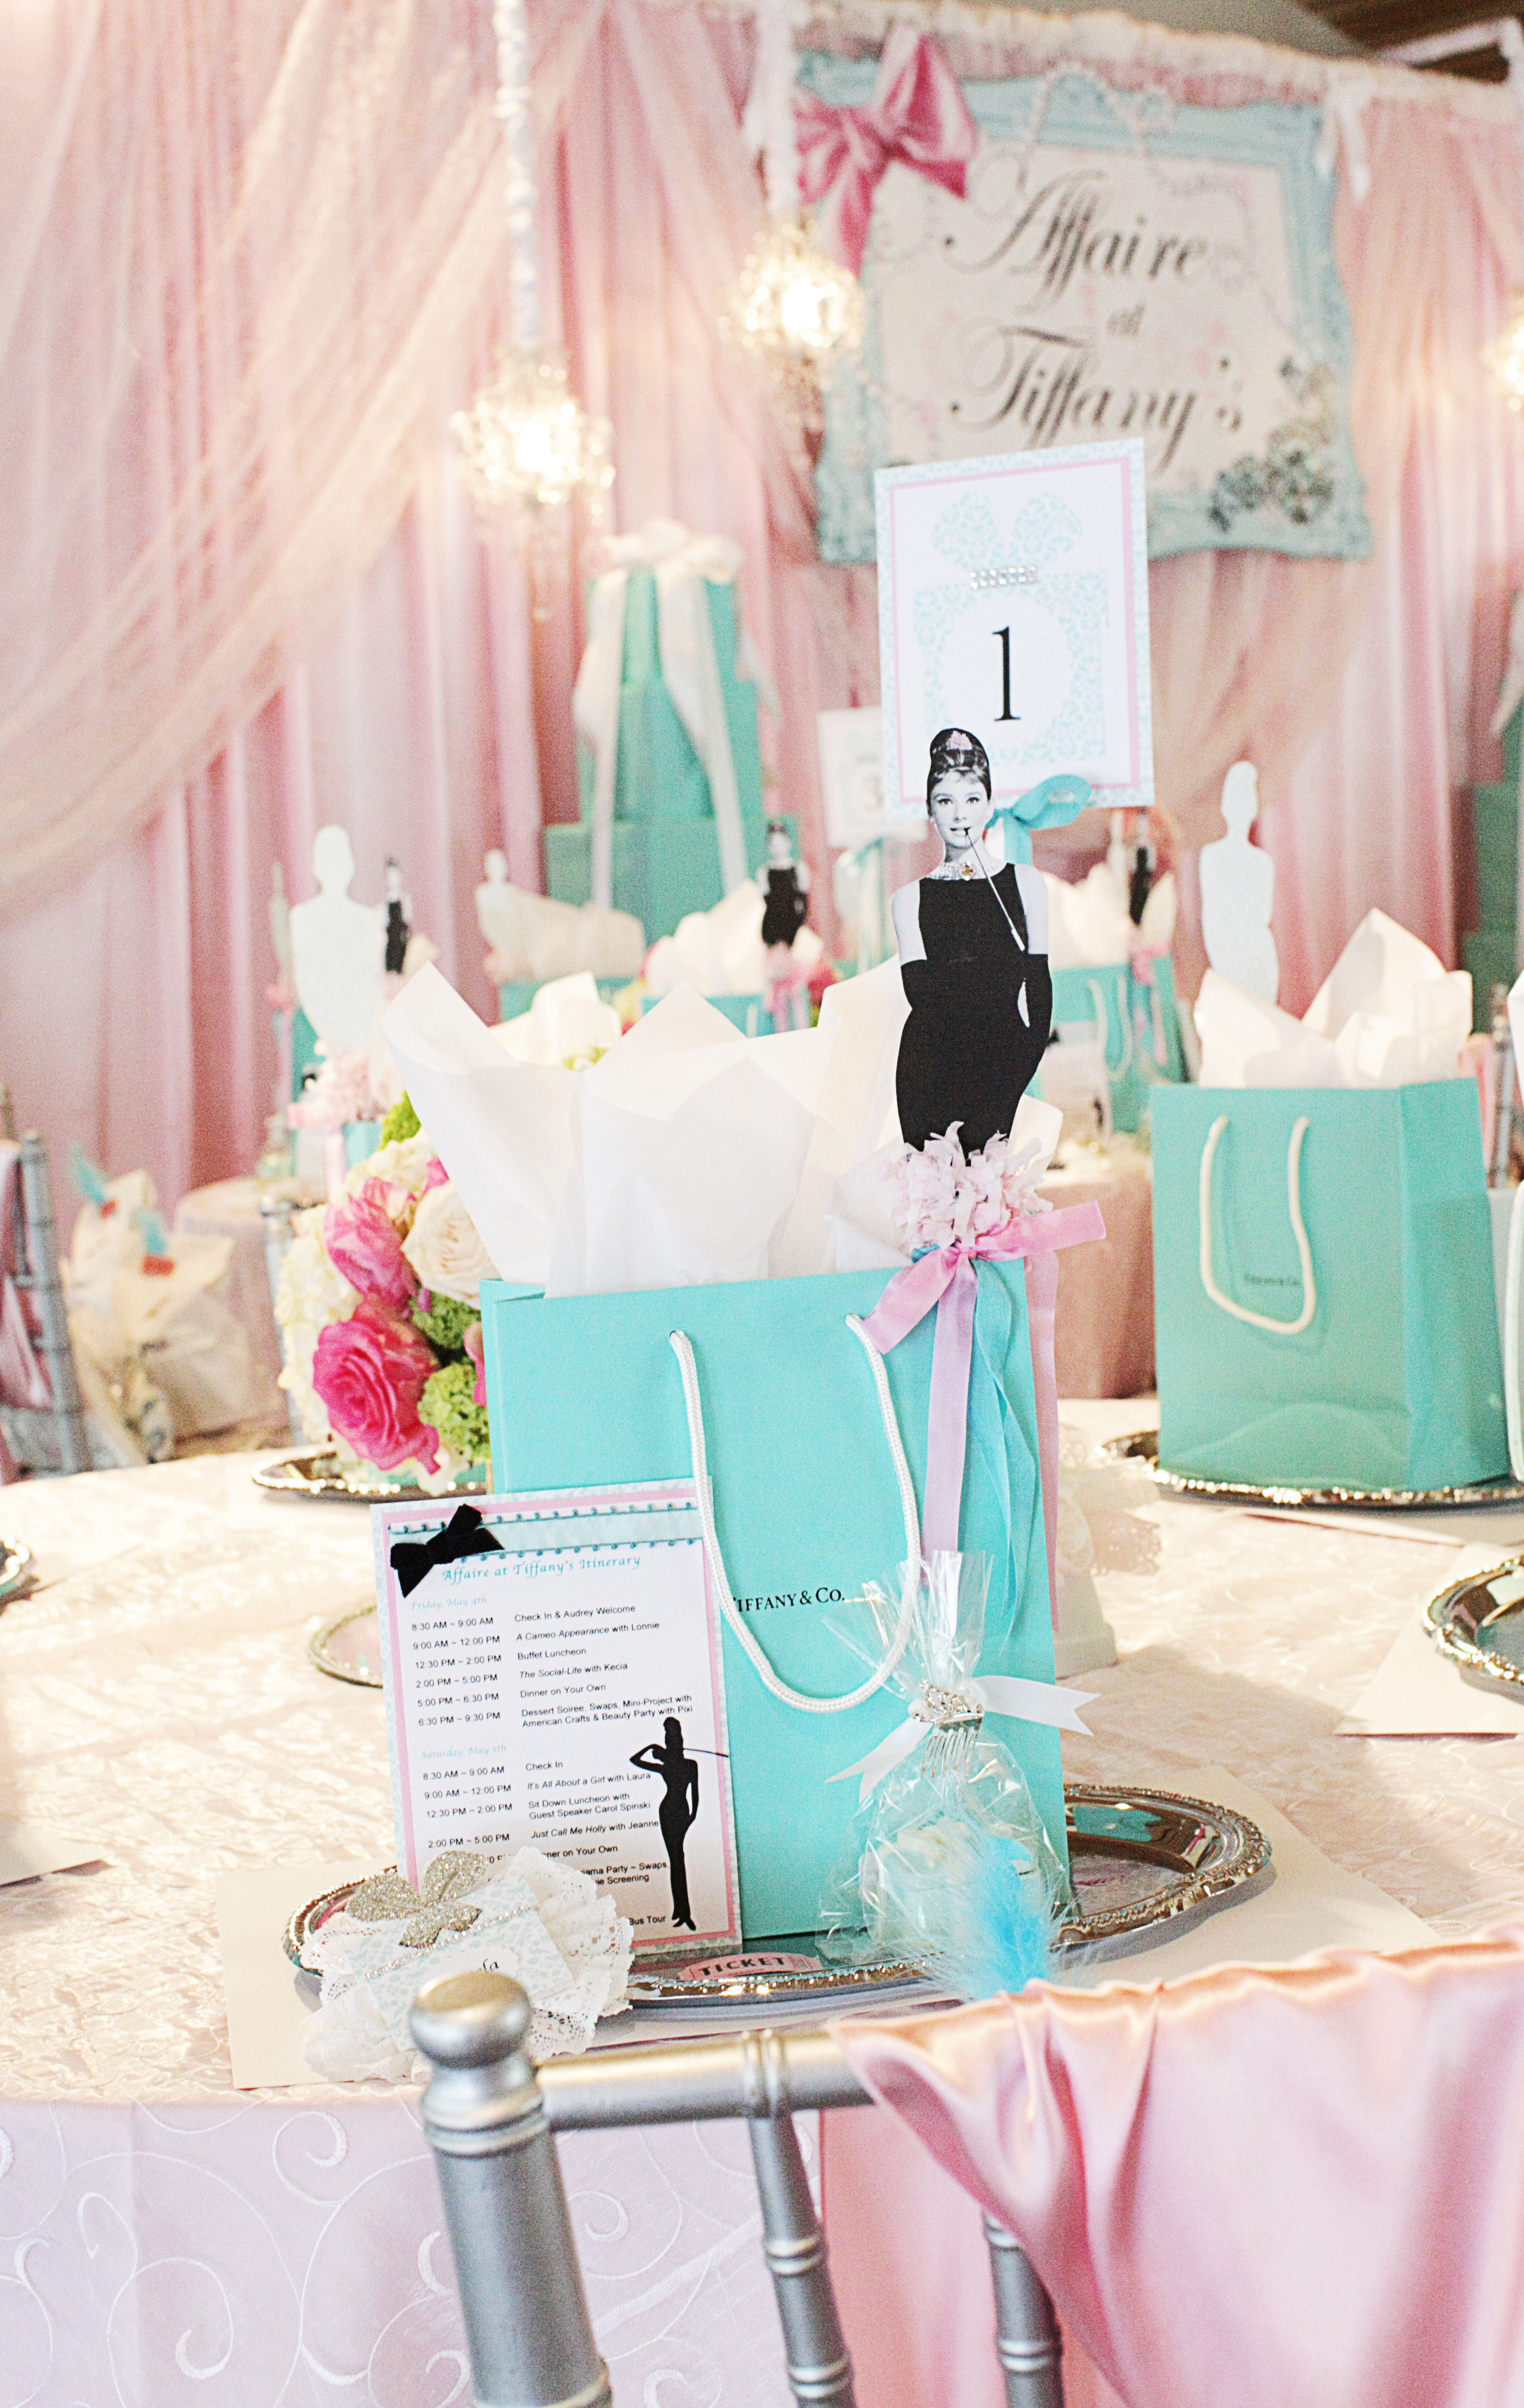 bridal shower ideas aisle perfect breakfast at tiffanys bridal shower theme beautiful event styled by kim caldwell as seen on artist jennifer hayslips